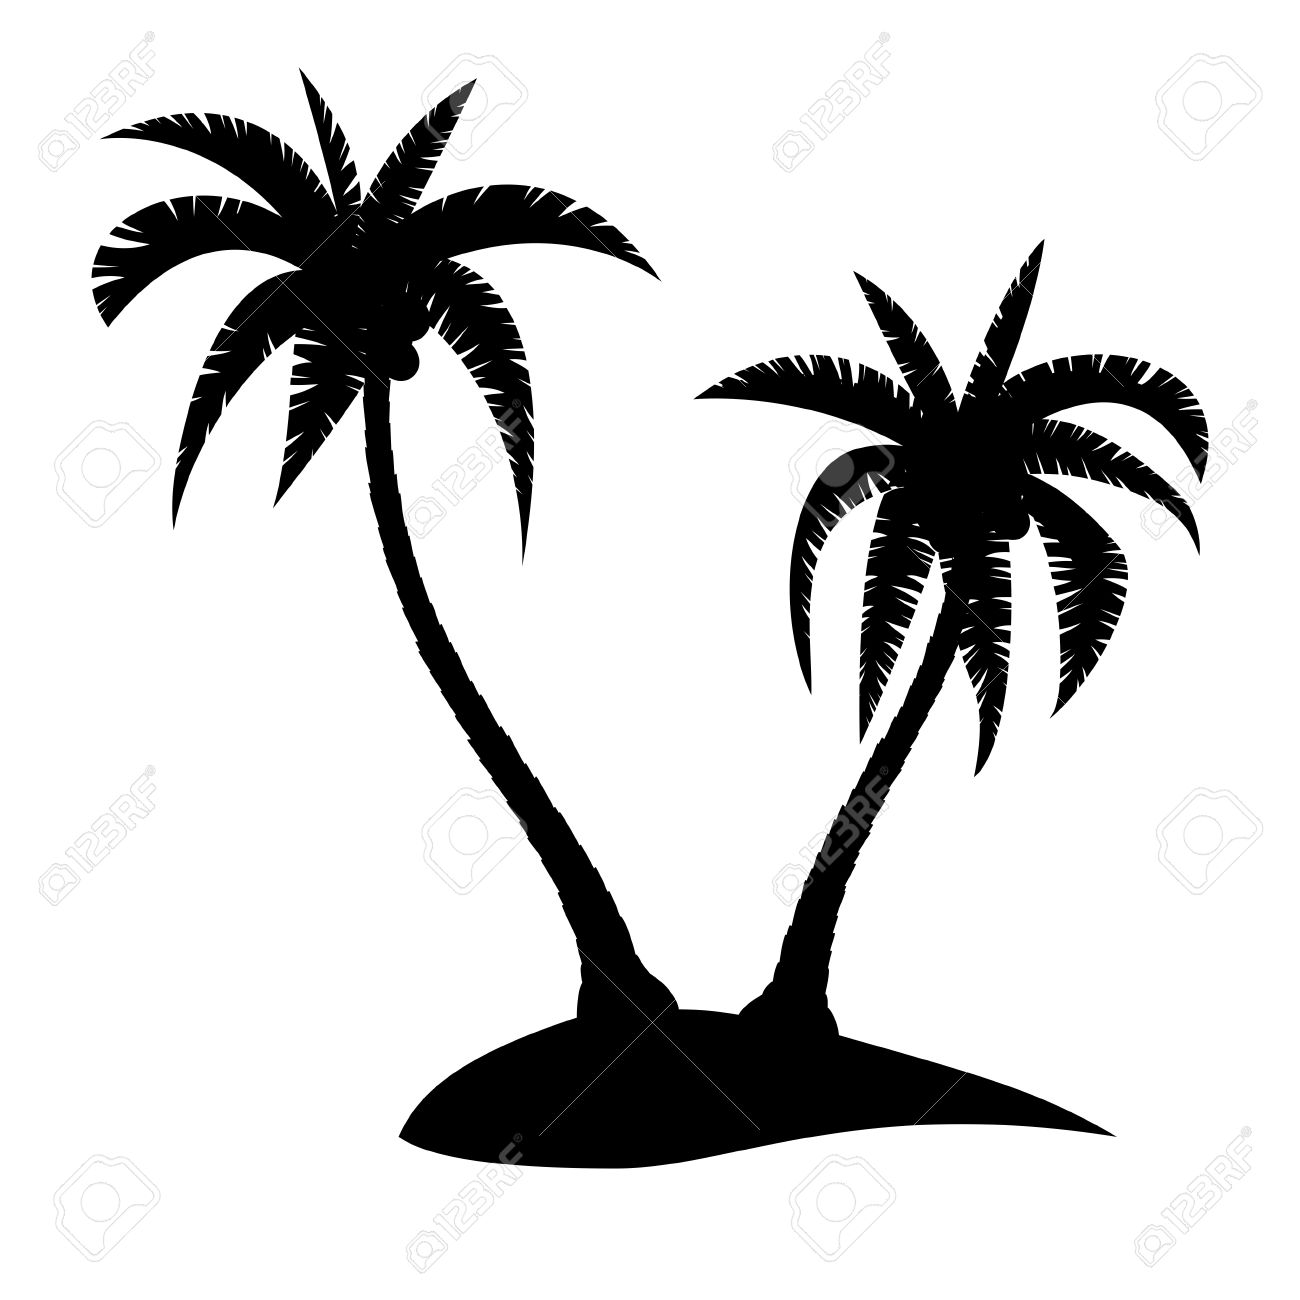 palm tree island clipart black and white #5